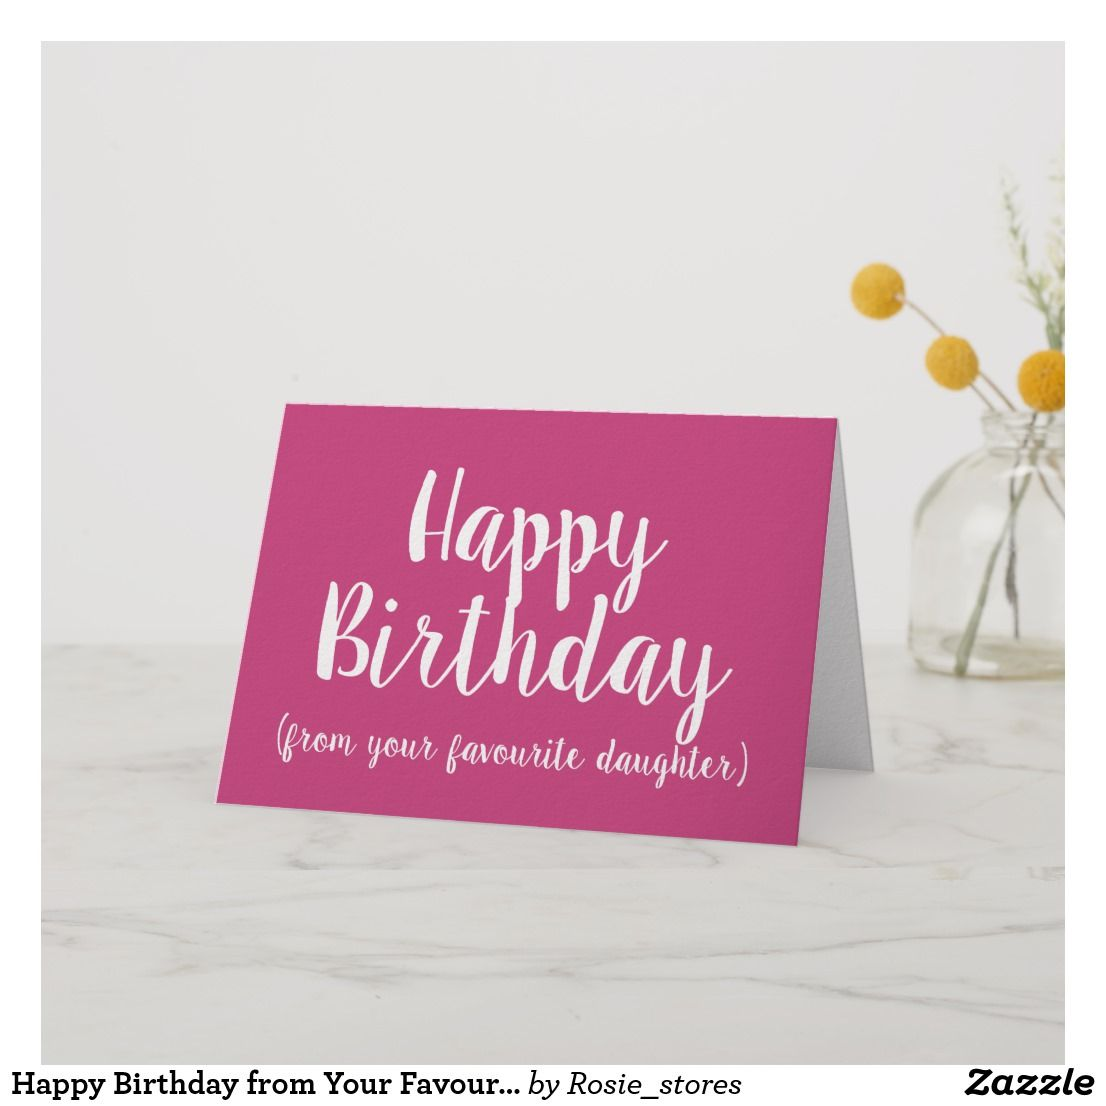 Happy Birthday From Your Favourite Daughter Funny Card Cardsfunny Cardsgreeting Cardshappy Cardbirthday Greeting Cardsonline